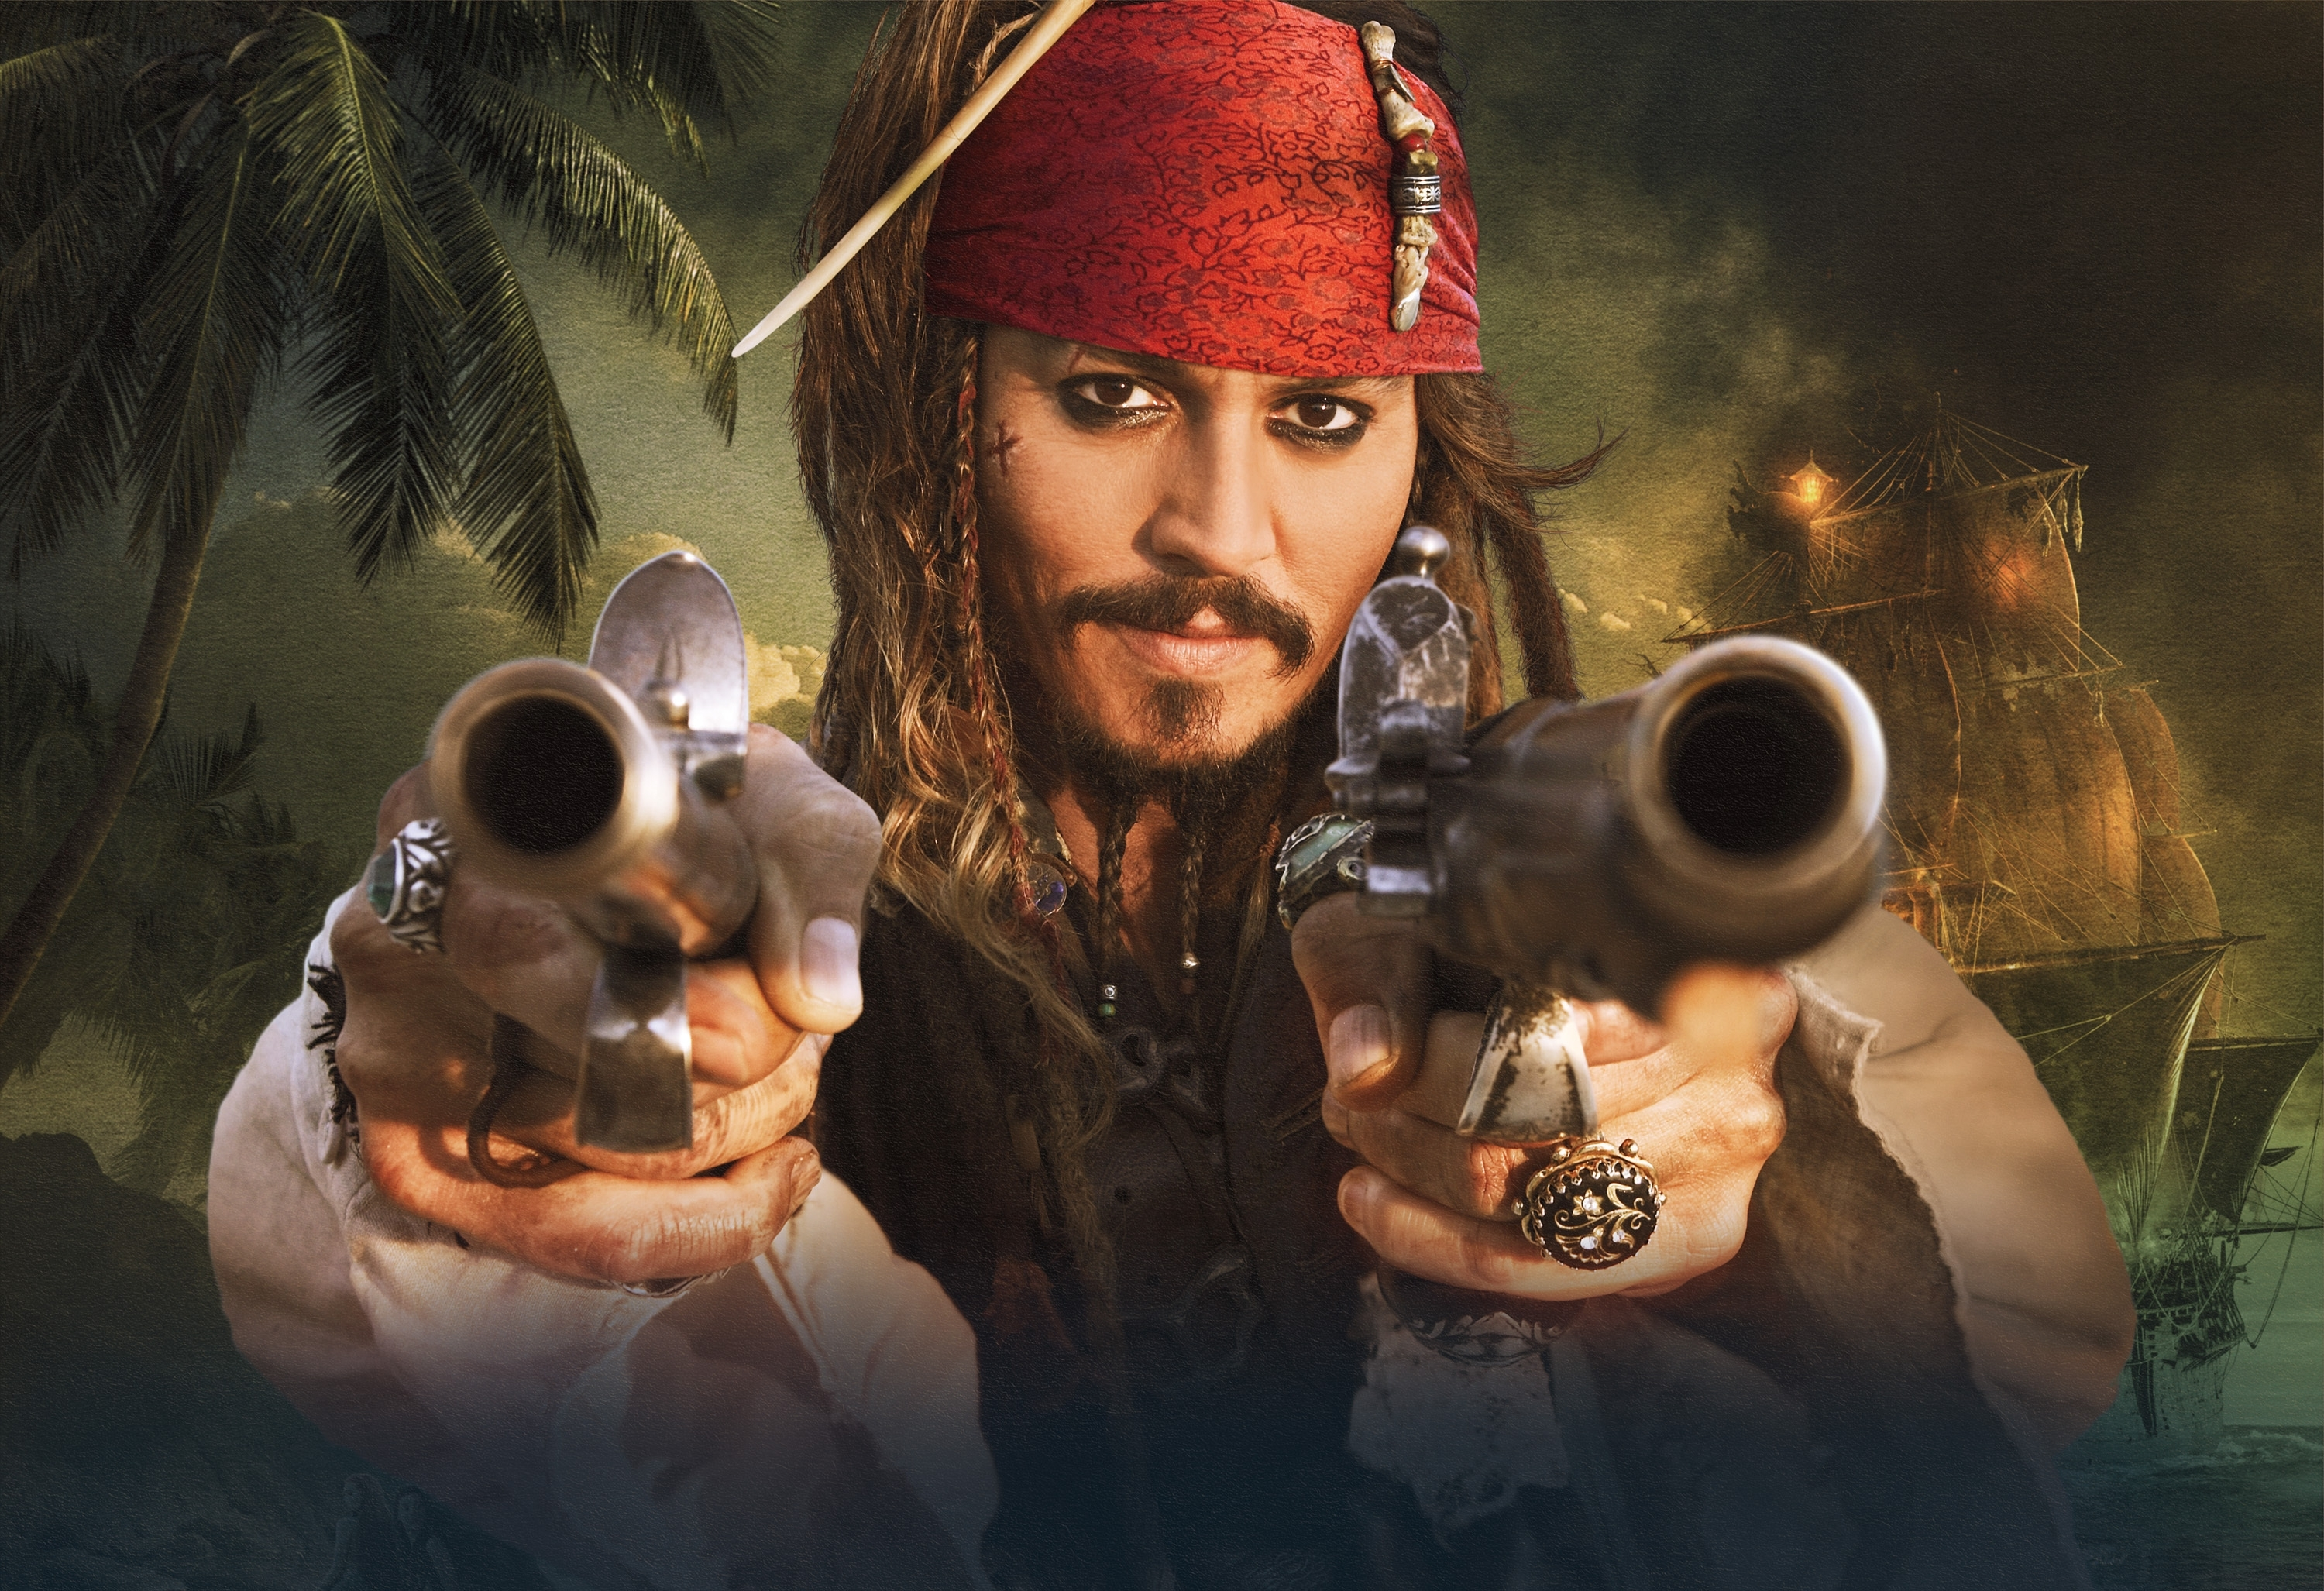 388 pirates of the caribbean hd wallpapers | background images